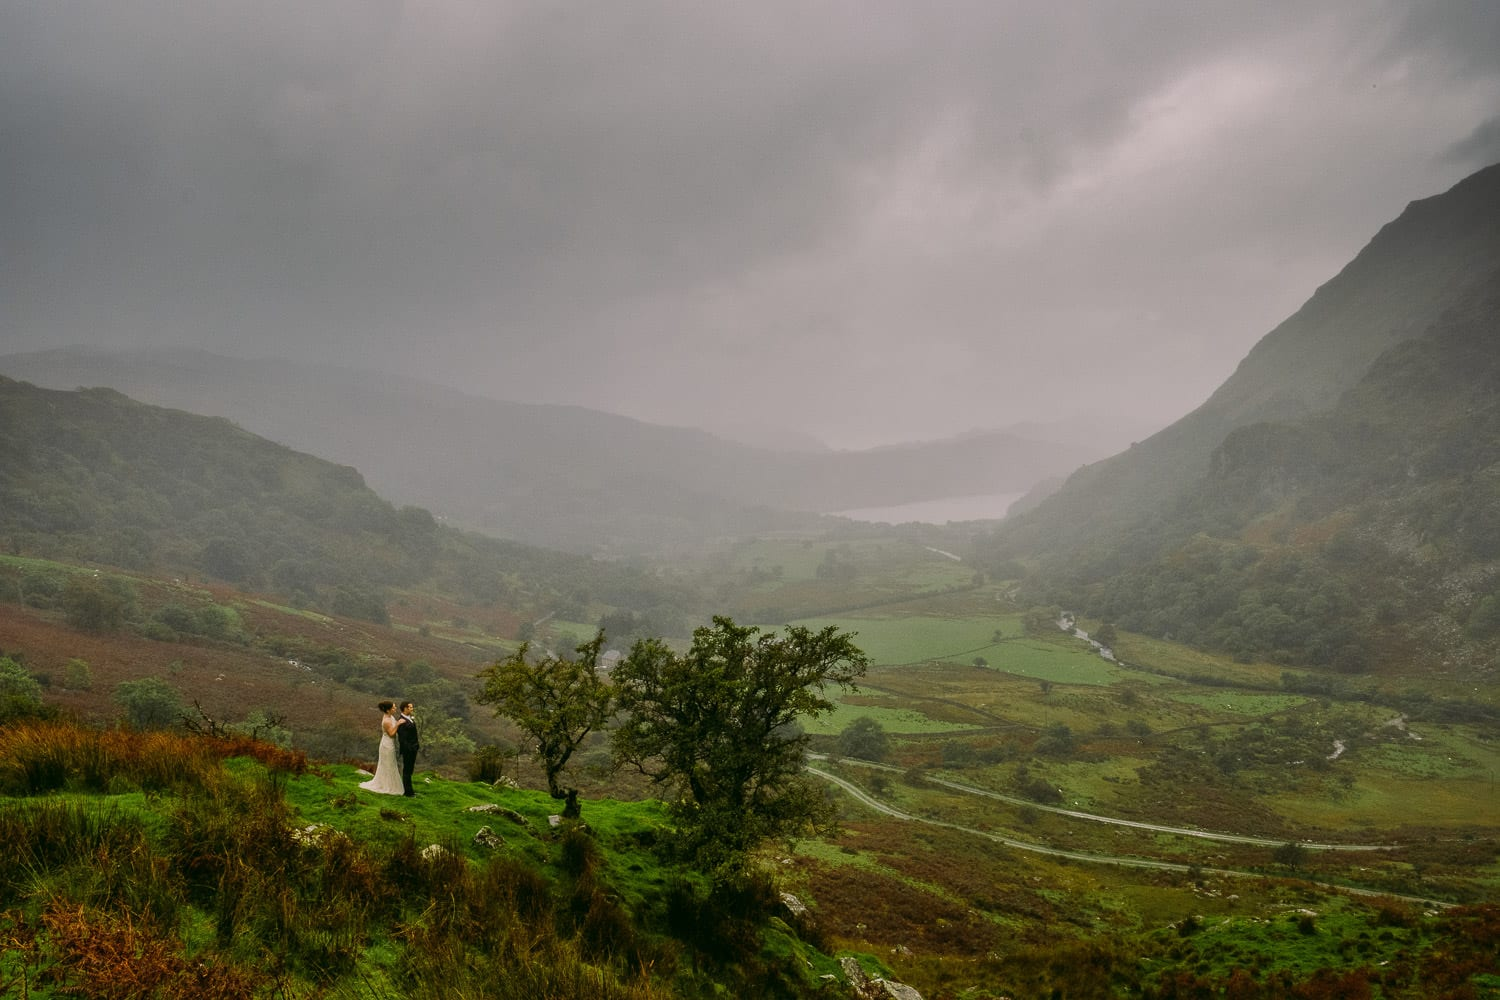 An epic portrait of the bride and groom in the mountains